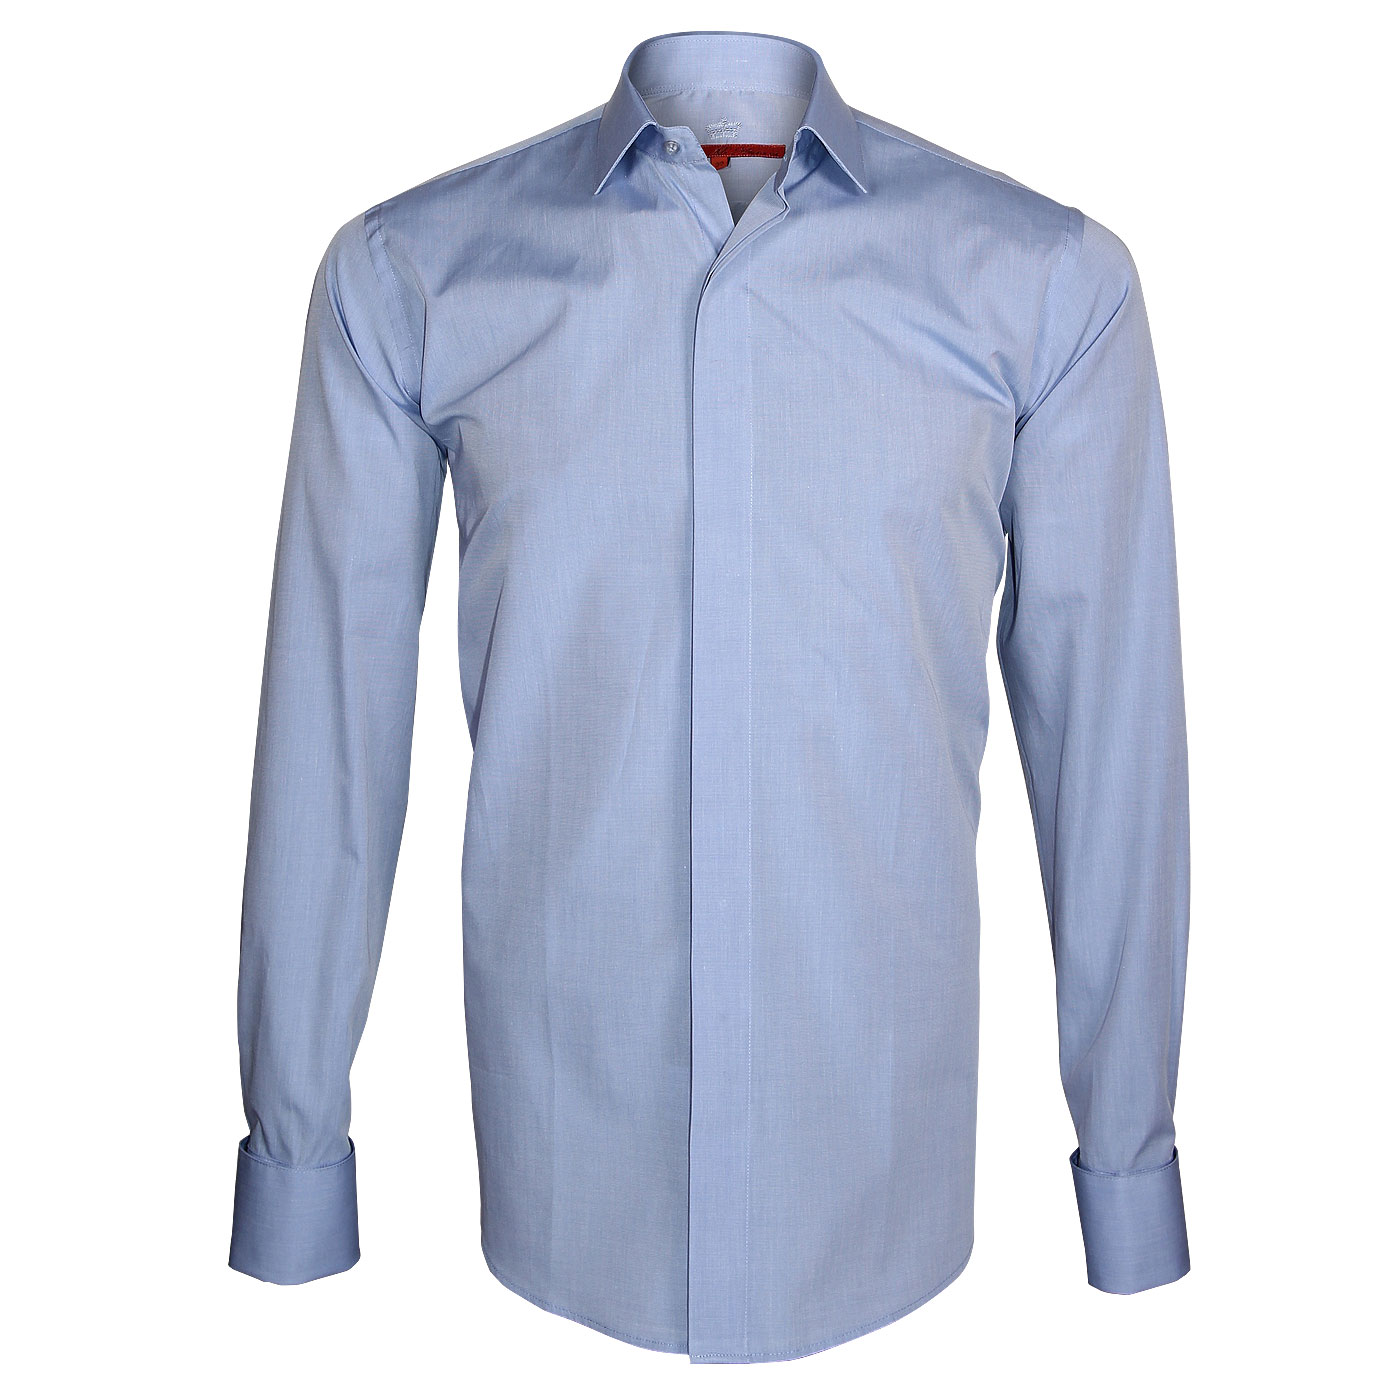 Shirt Regular Fit +600 Models Men's Shirts online